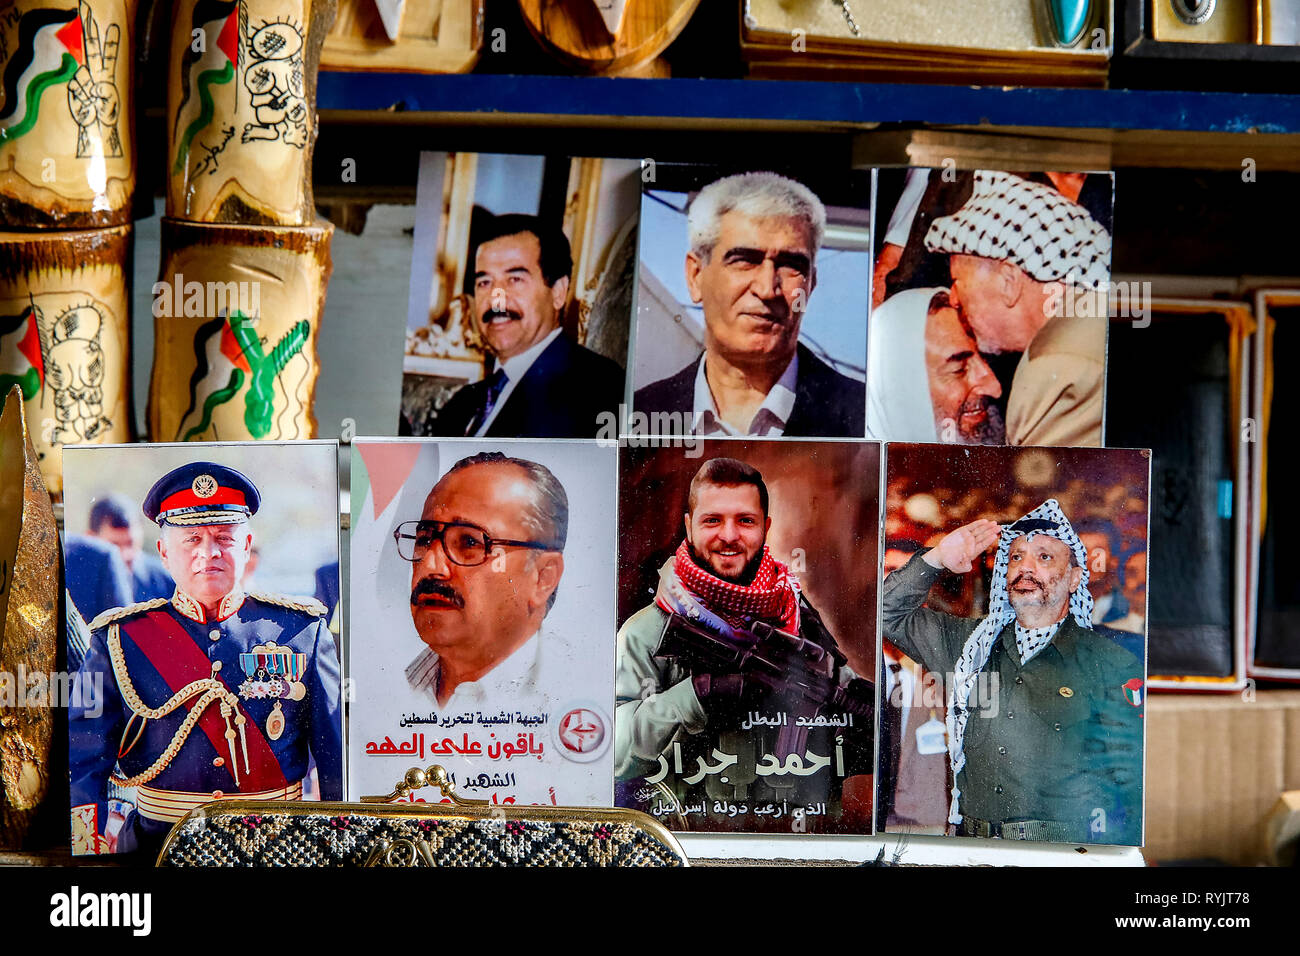 Pictures displayed outside a shop in Nablus, West Bank, Palestine. Arab leaders and freedom fighters. - Stock Image